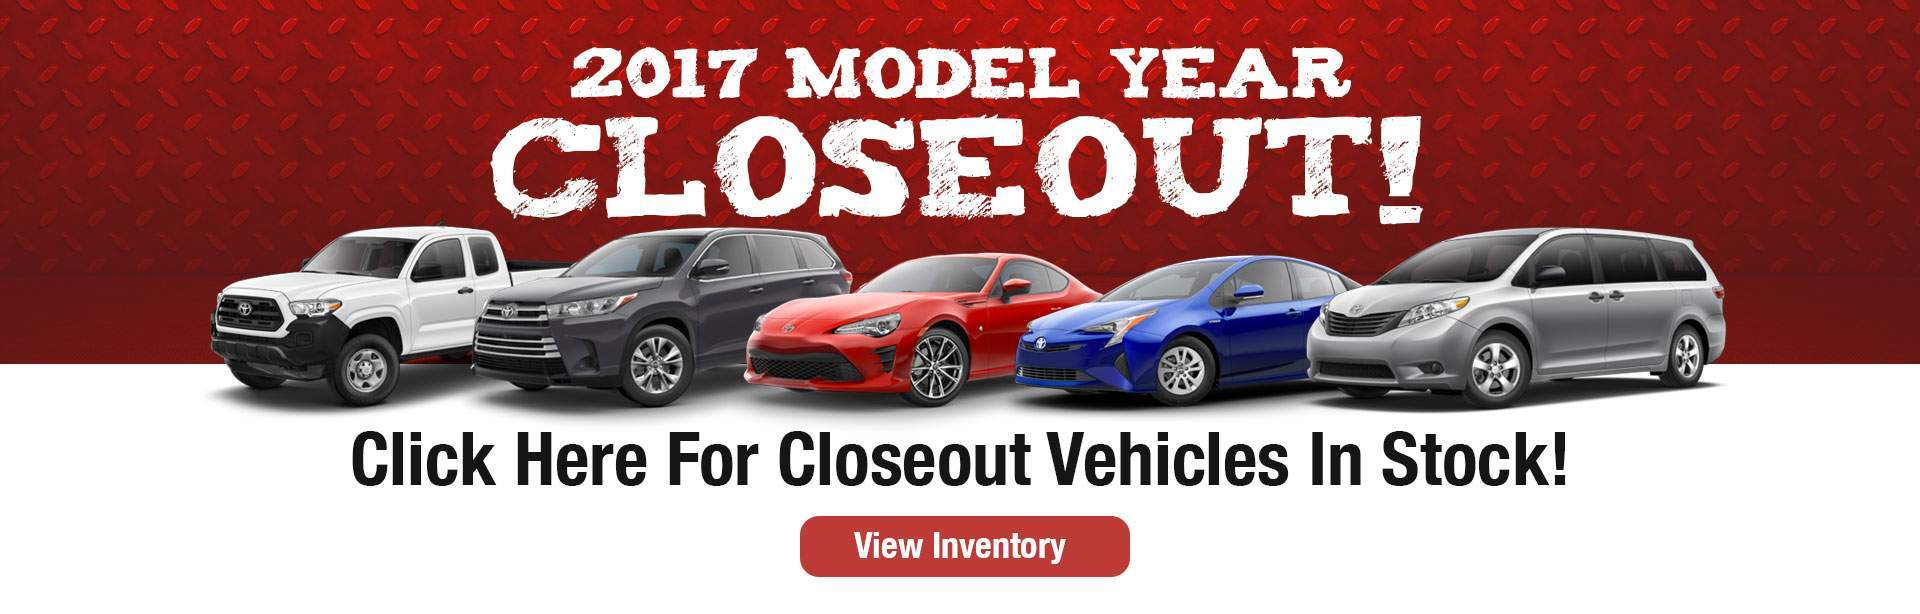 2017 Model Year Closeout